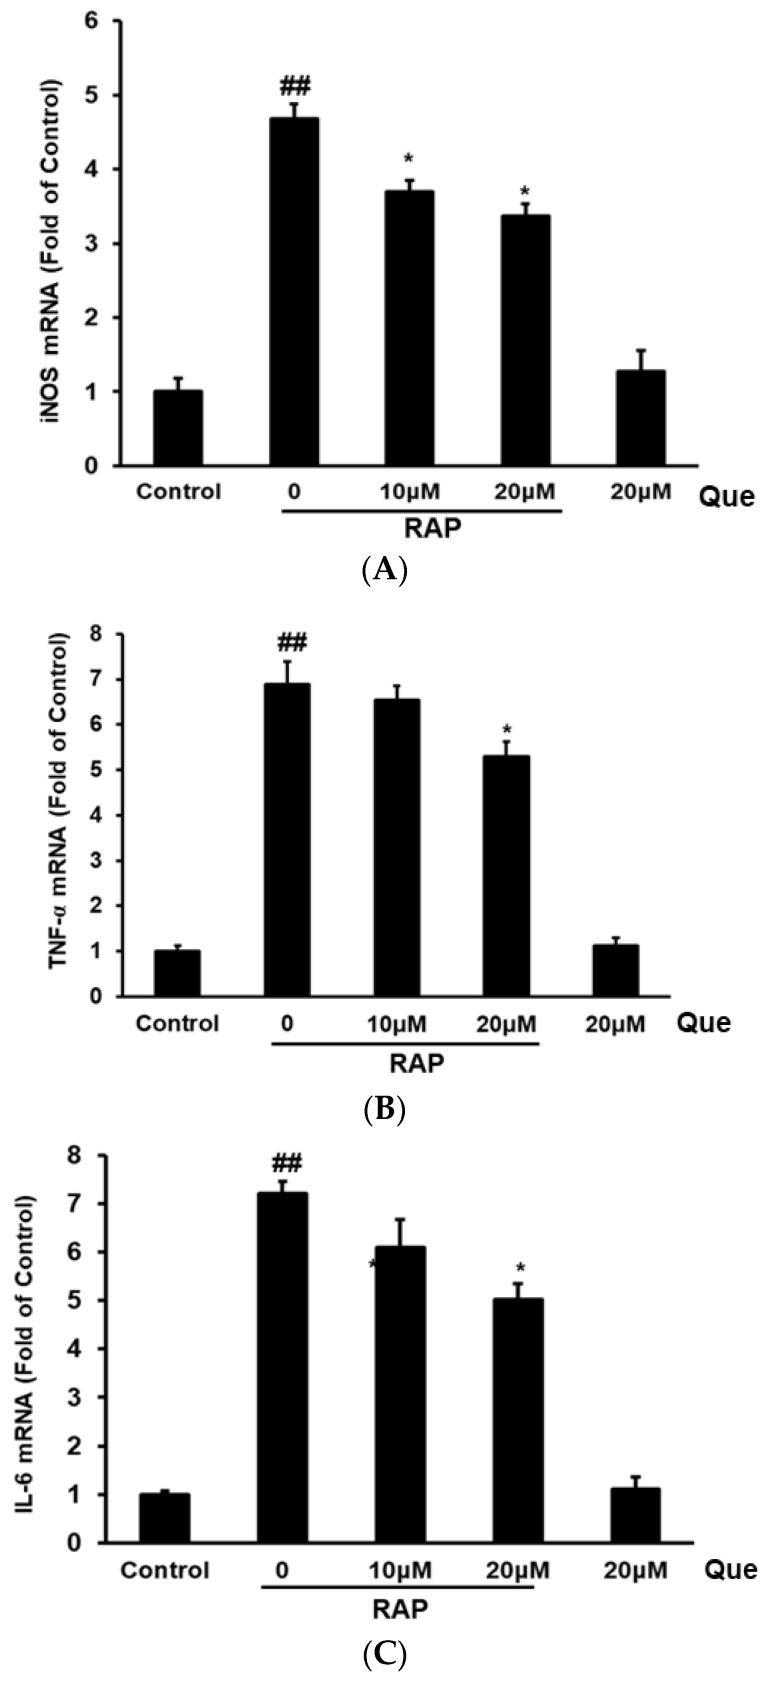 Effects of quercetin on inducible nitric oxide synthase (iNOS) ( A ), TNF-α ( B ) and IL-6 ( C ) mRNA expression in RAP-induced RAW264.7 macrophages. RAW264.7 cells were treated with quercetin (10, 20 μM) and then treated with RAP (100 μg/mL). The mRNA expression level was quantified with real time fluorescence PCR. Data from the experiments are expressed as mean ± SD (## p